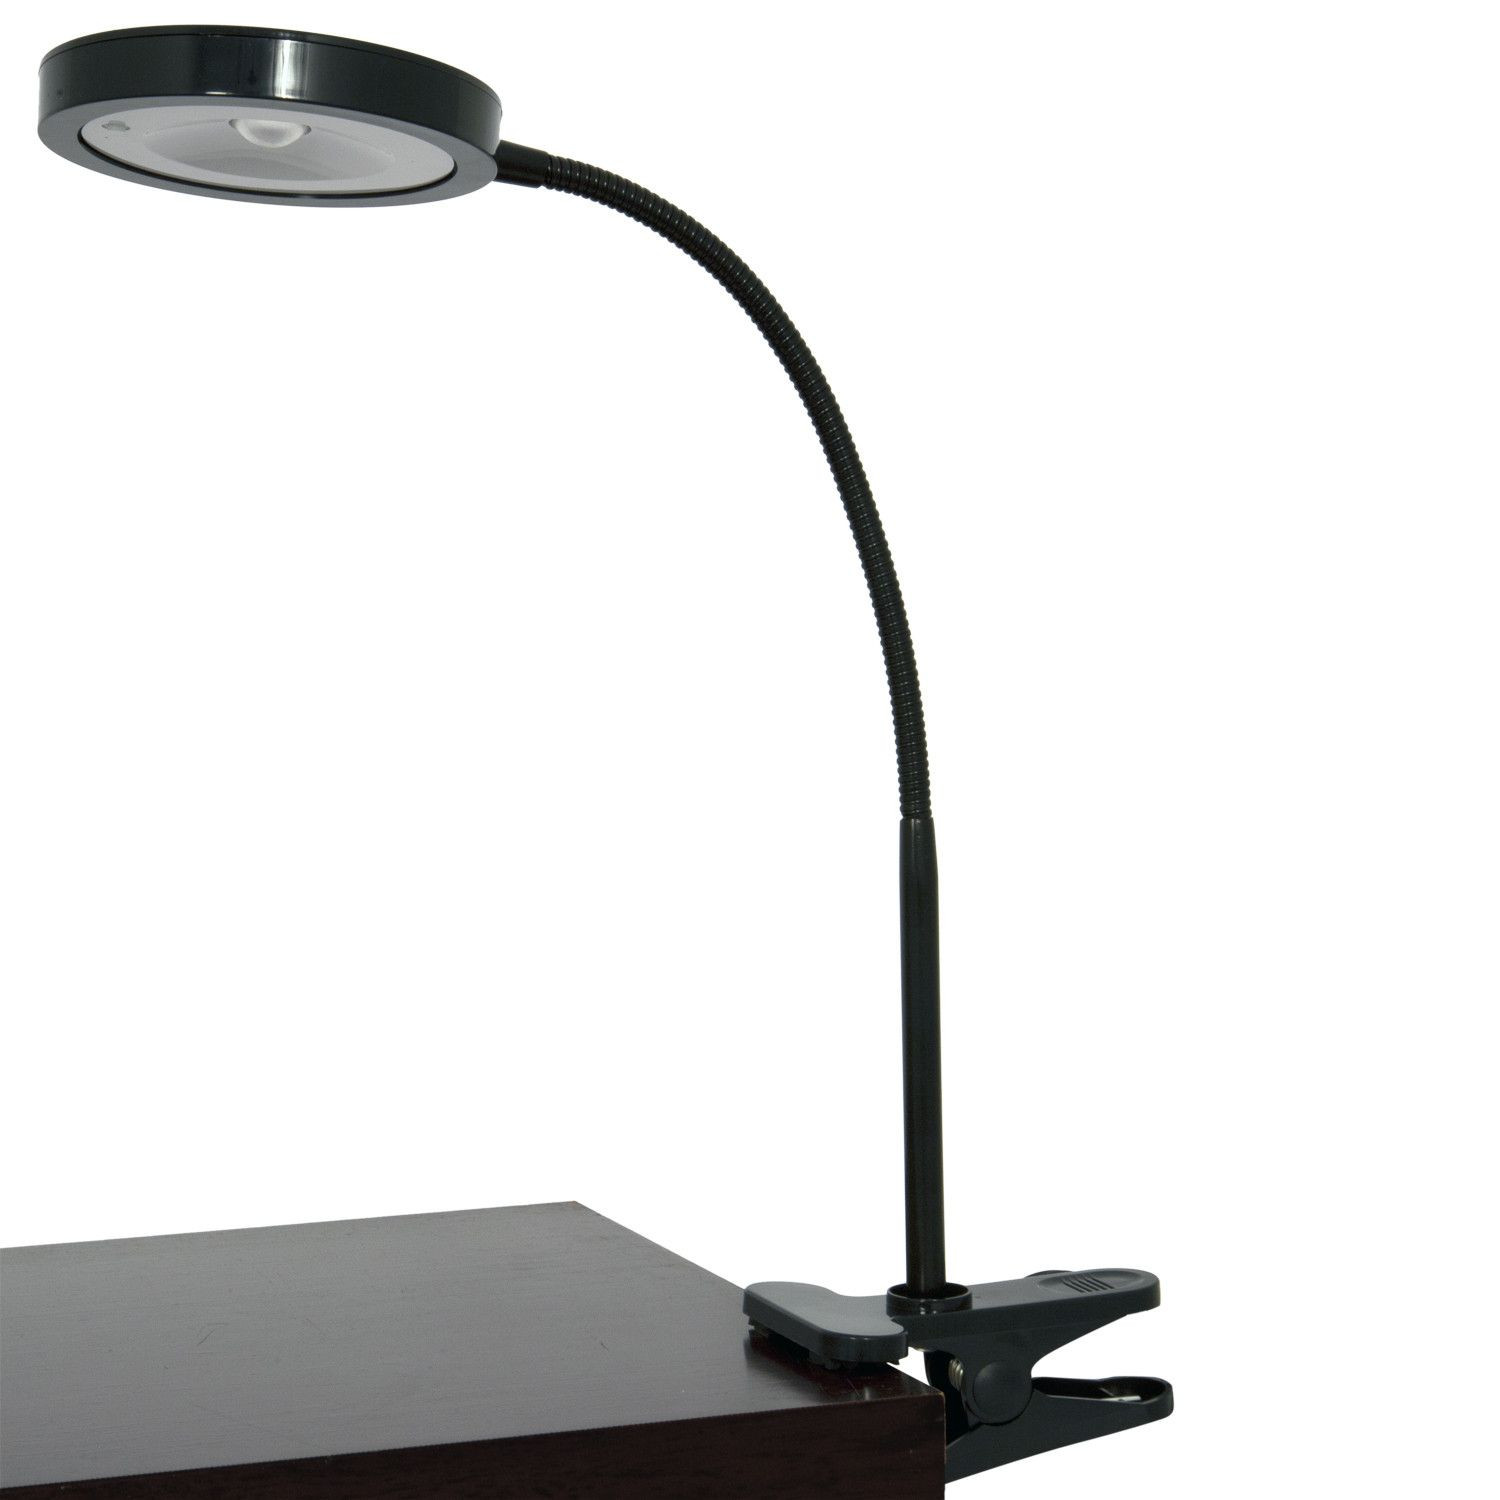 Best ideas about Desk Lamps Amazon . Save or Pin Tall Led Desk Lamp Desk Lamp Amazon Fluorescent Light Desk Now.